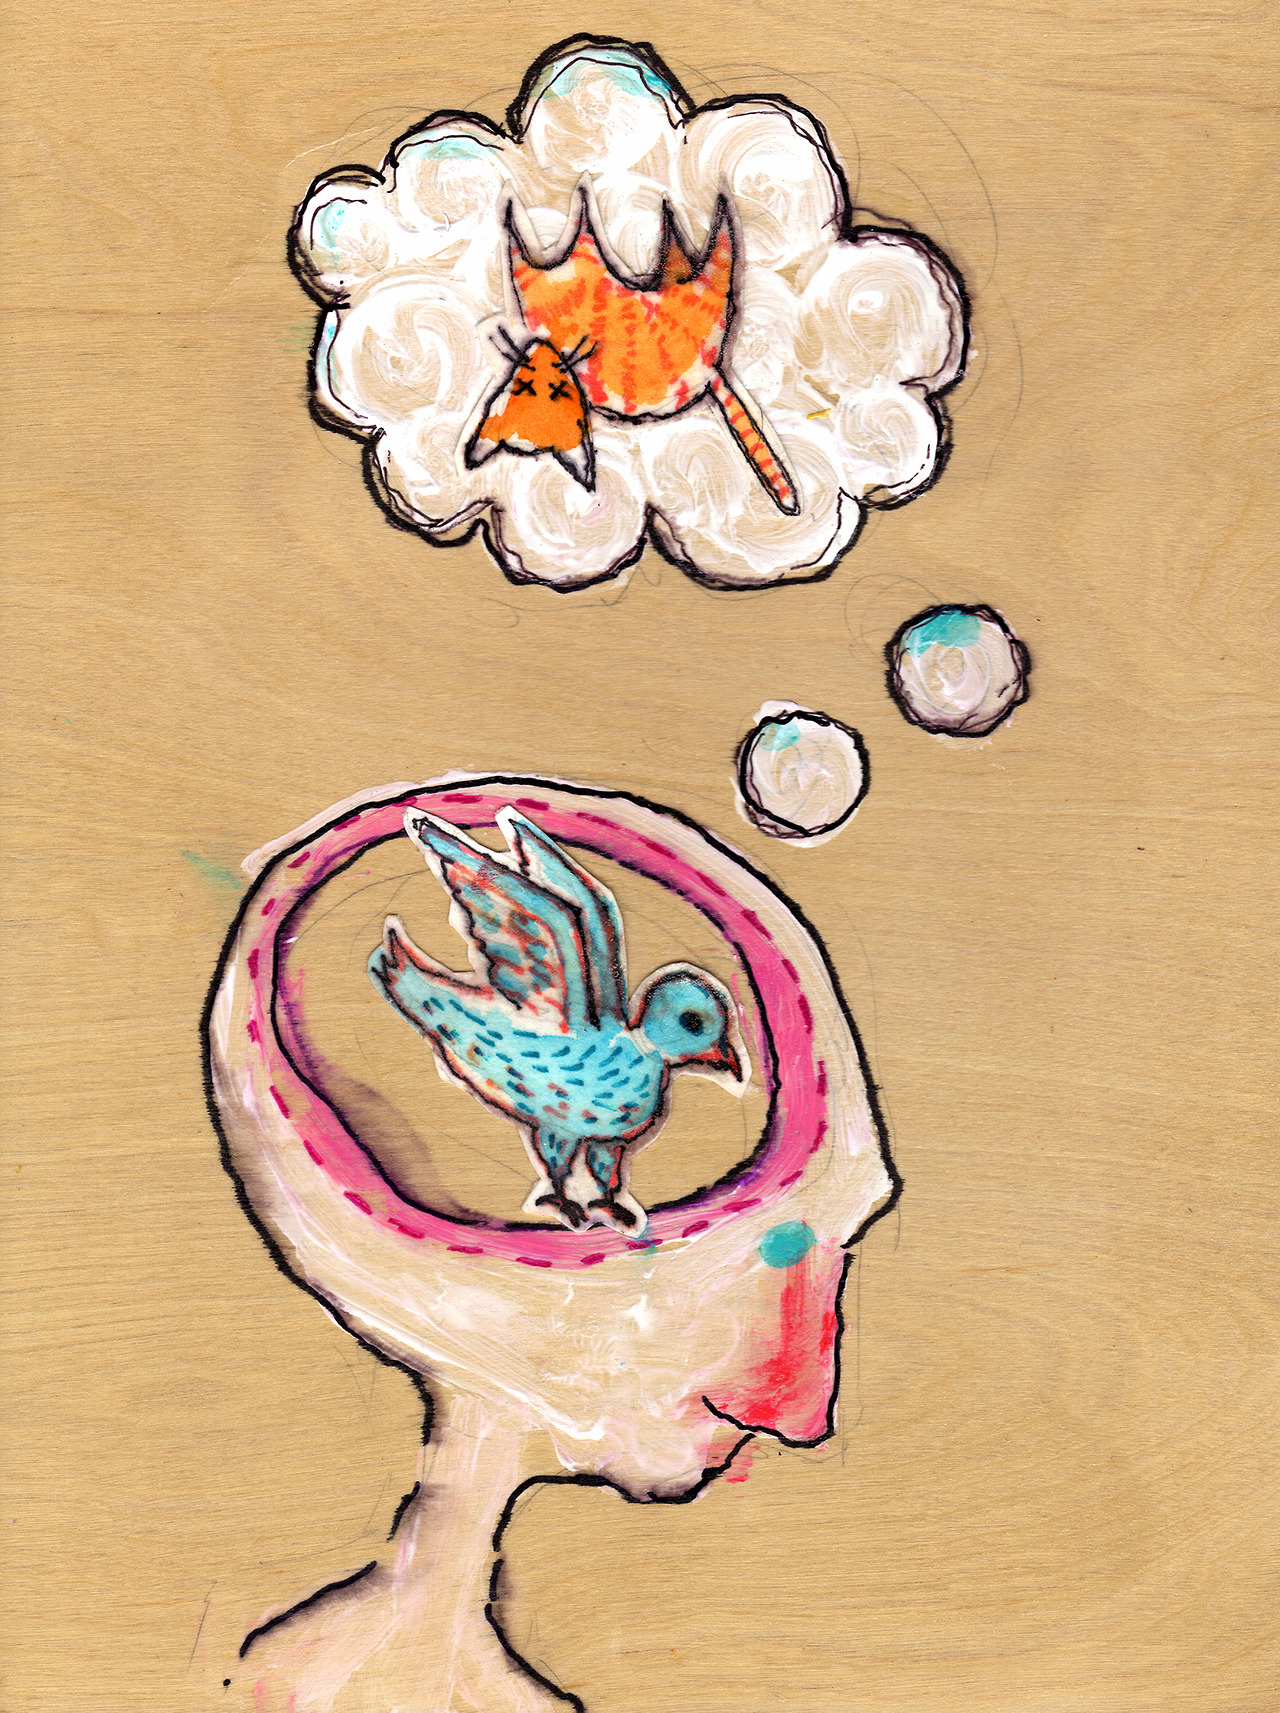 8/1/13 - The Bird Brain. Thinking happy thoughts. Buy it here - http://taylorwinder.bigcartel.com Prints here - http://society6.com/taylorwinder